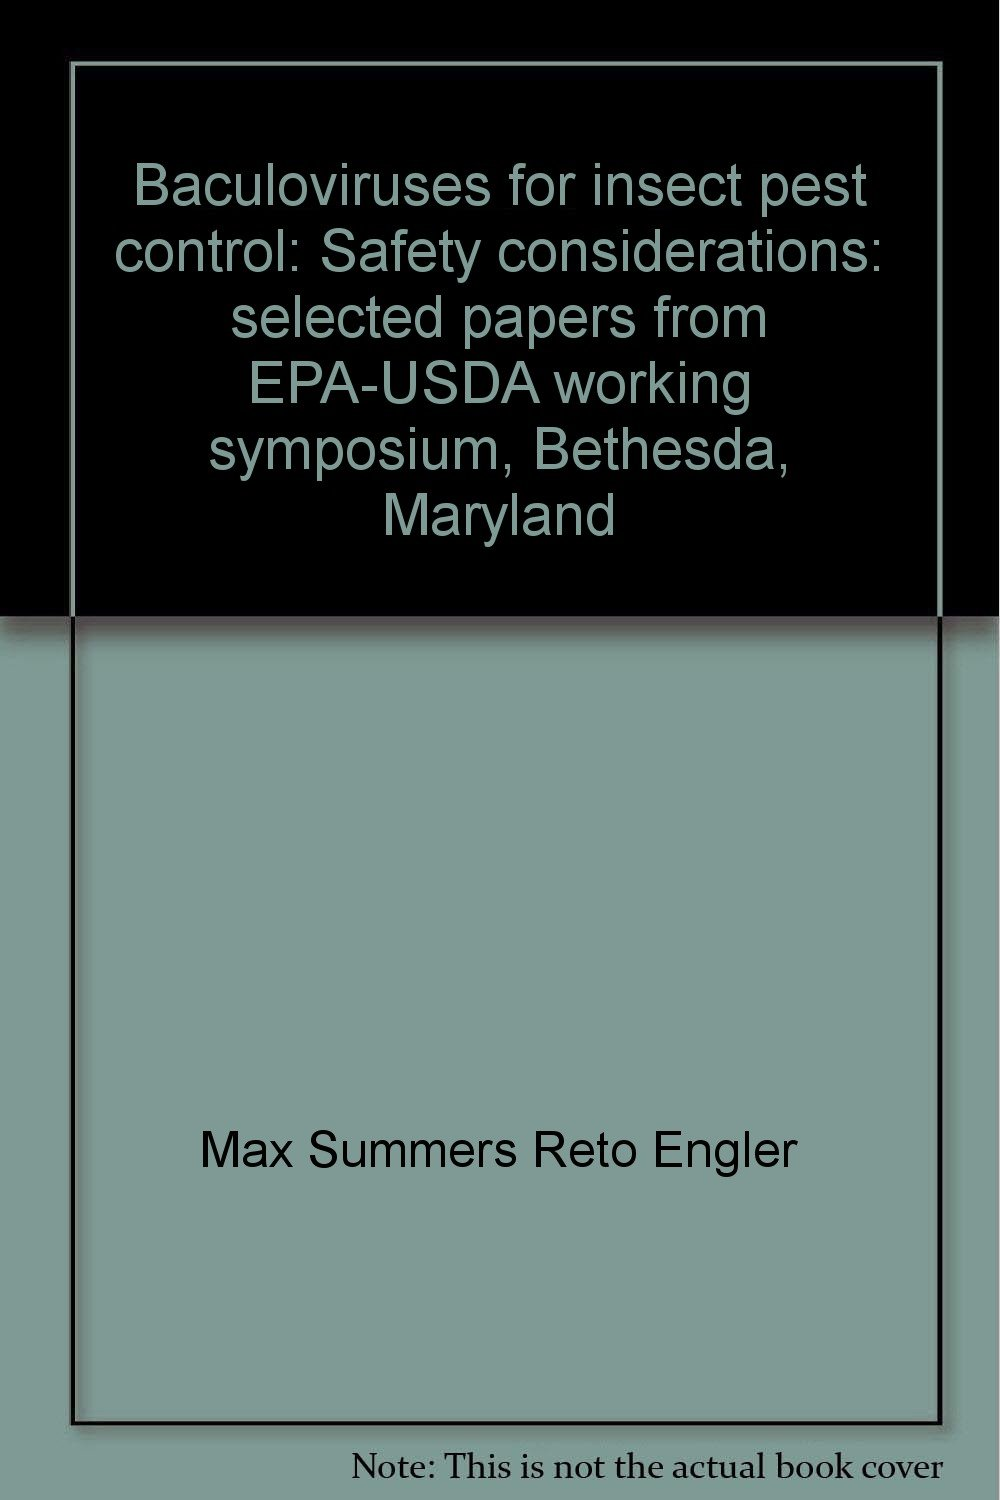 Baculoviruses for insect pest control: Safety considerations : selected papers from EPA-USDA working symposium, Bethesda, Maryland